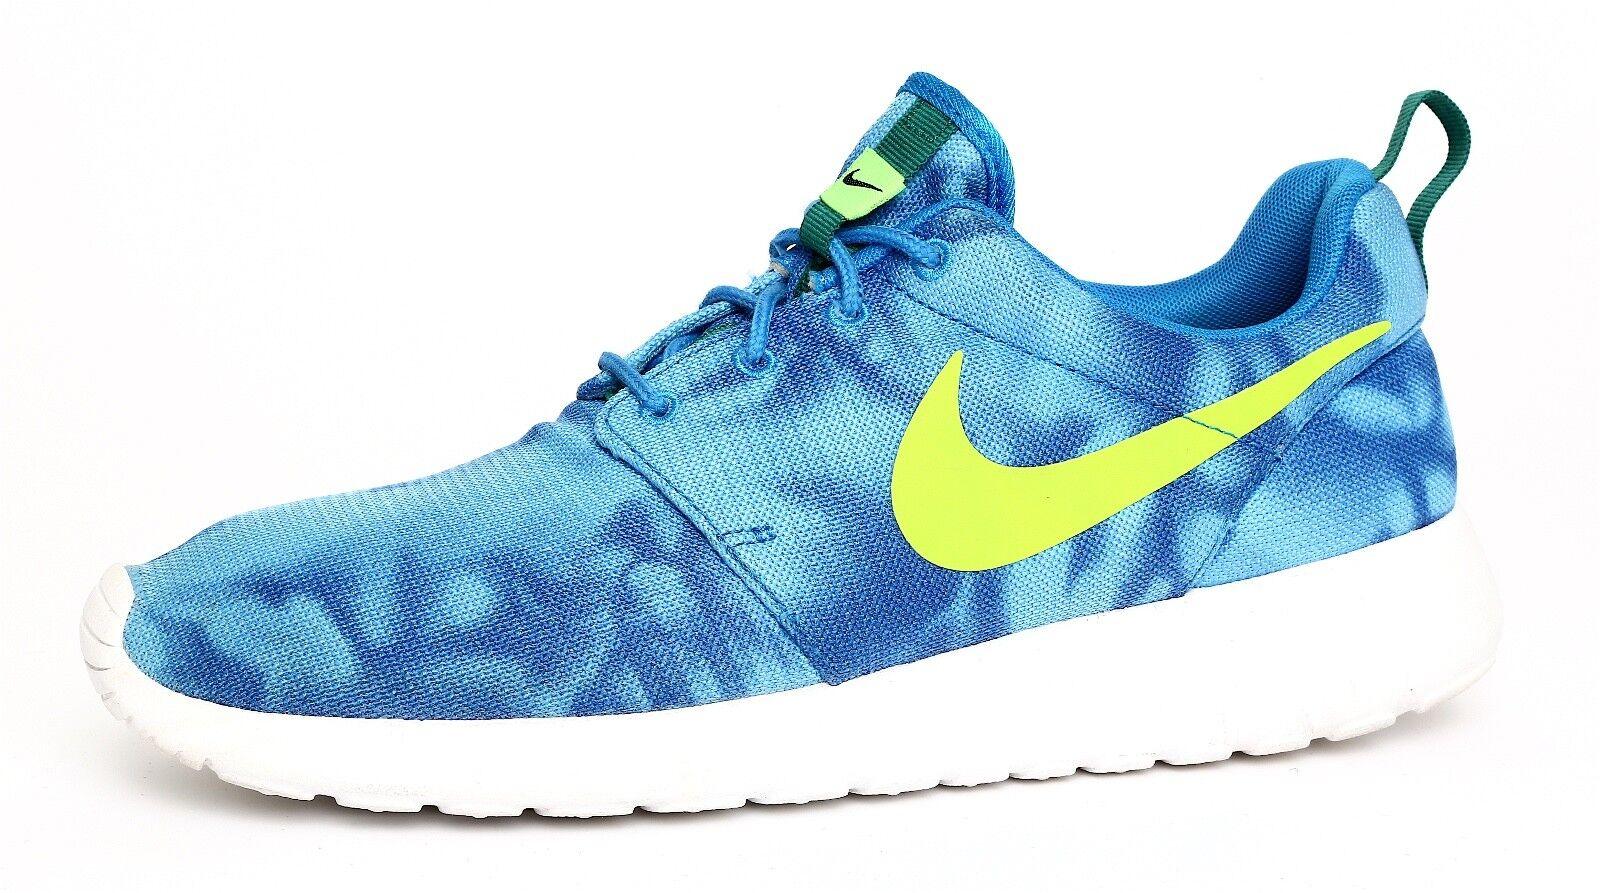 Nike Roshe Run Men's Electric bluee Sneaker Sz 9.5 7923